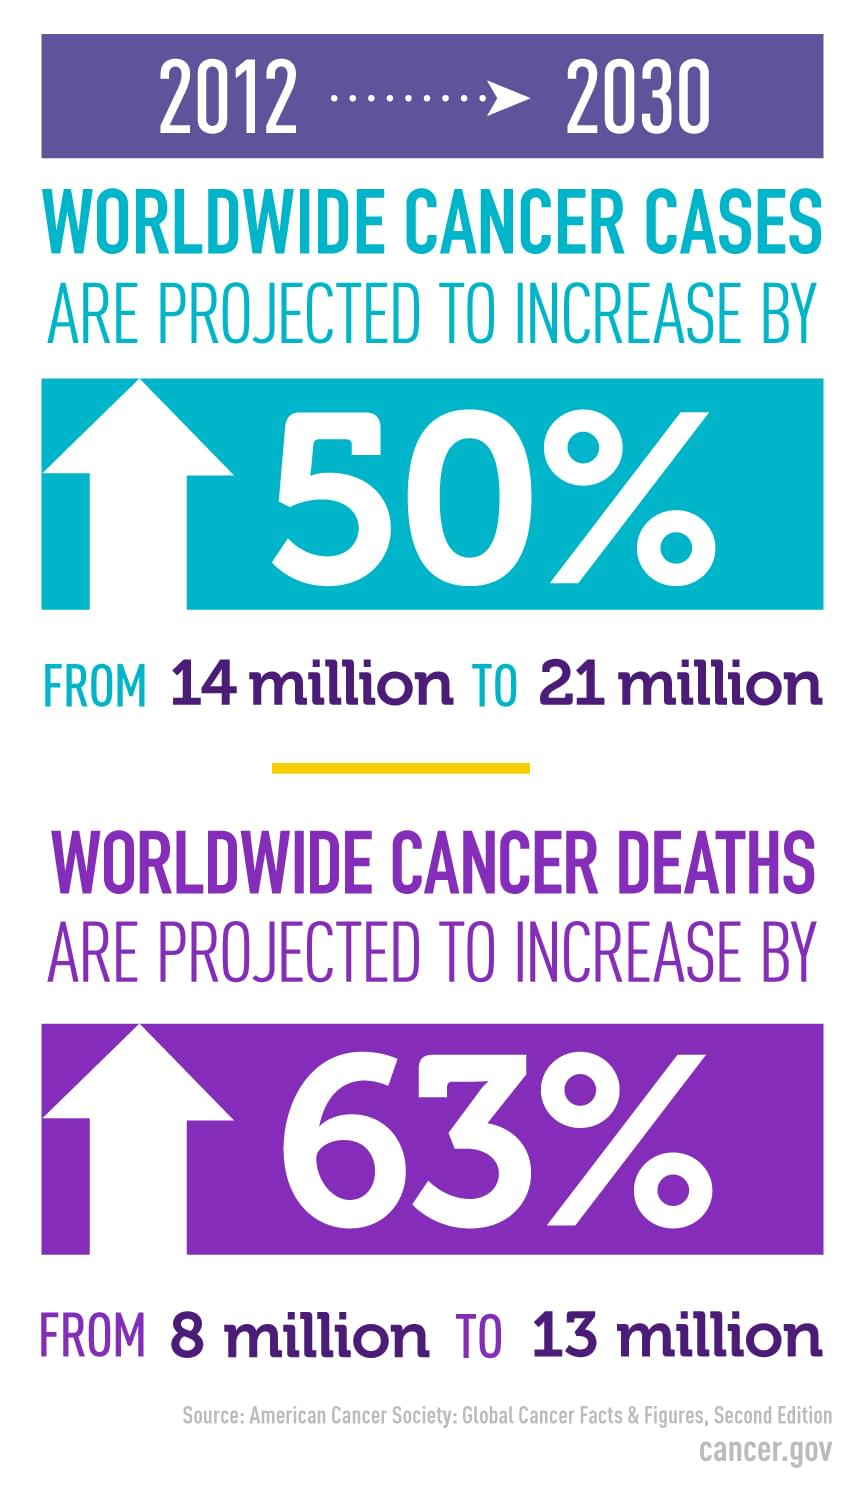 Infographic showing that from 2012 to 2030 the number of cancer cases worldwide will increase by 51 percent and cancer deaths will increase by 63 percent